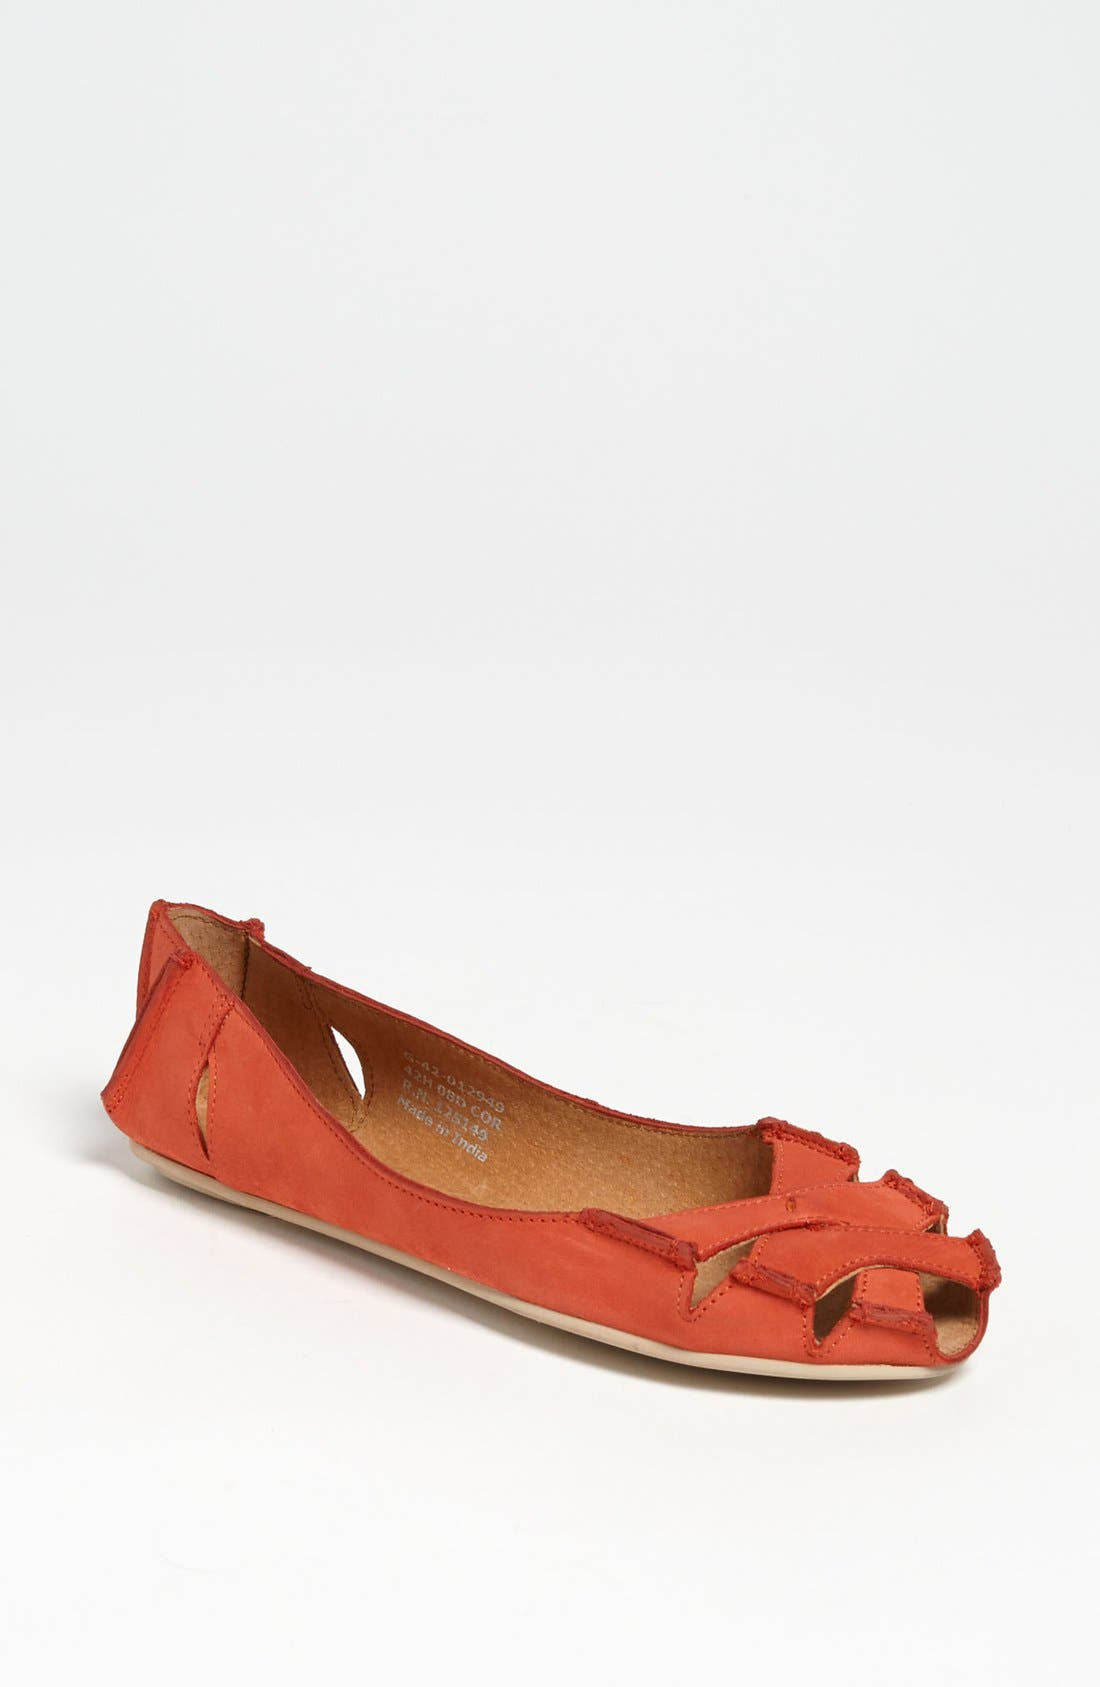 Alternate Image 1 Selected - Topshop Cutout Flats